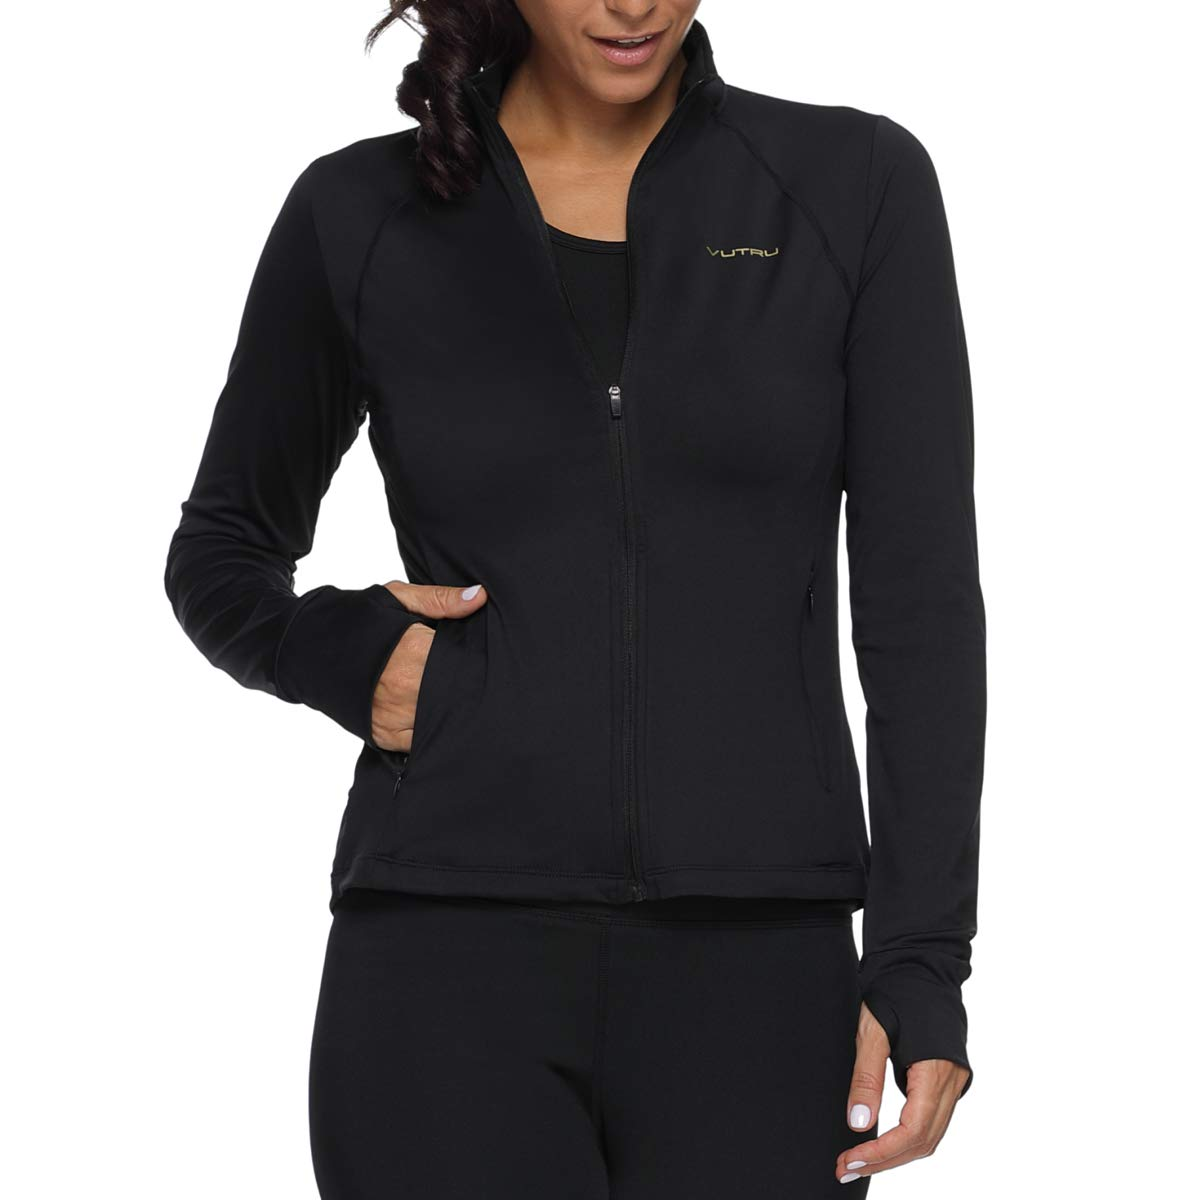 Vutru Women's Active Running Track Jacket Full-Zip Sweatshirt Yoga Workout Jacket